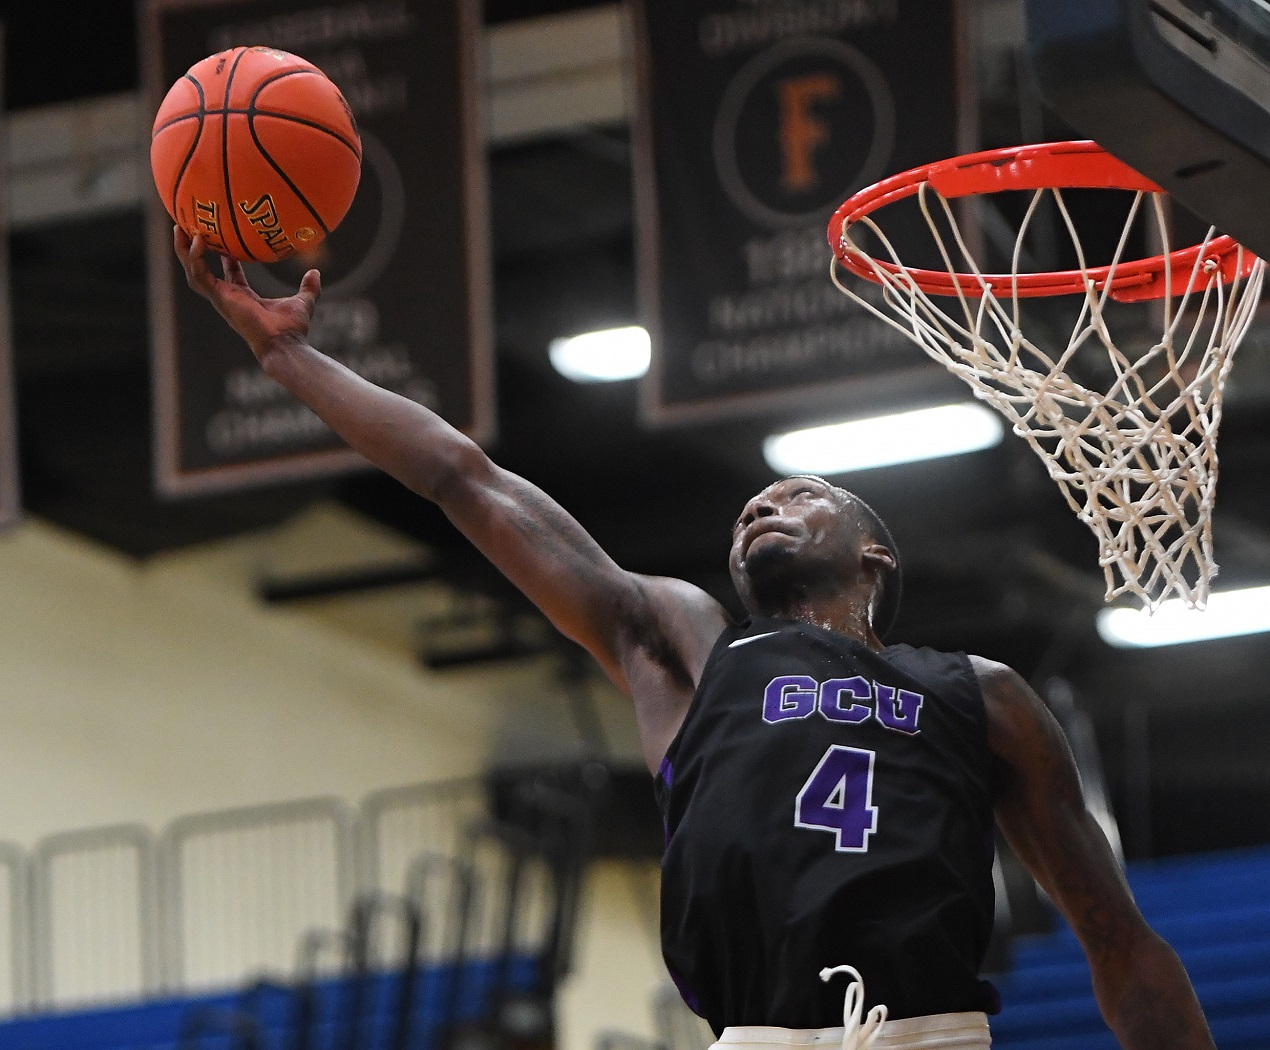 GCU Player Oscar Frayer Suffered the Same Tragic Death as His Father, Just Days After March Madness